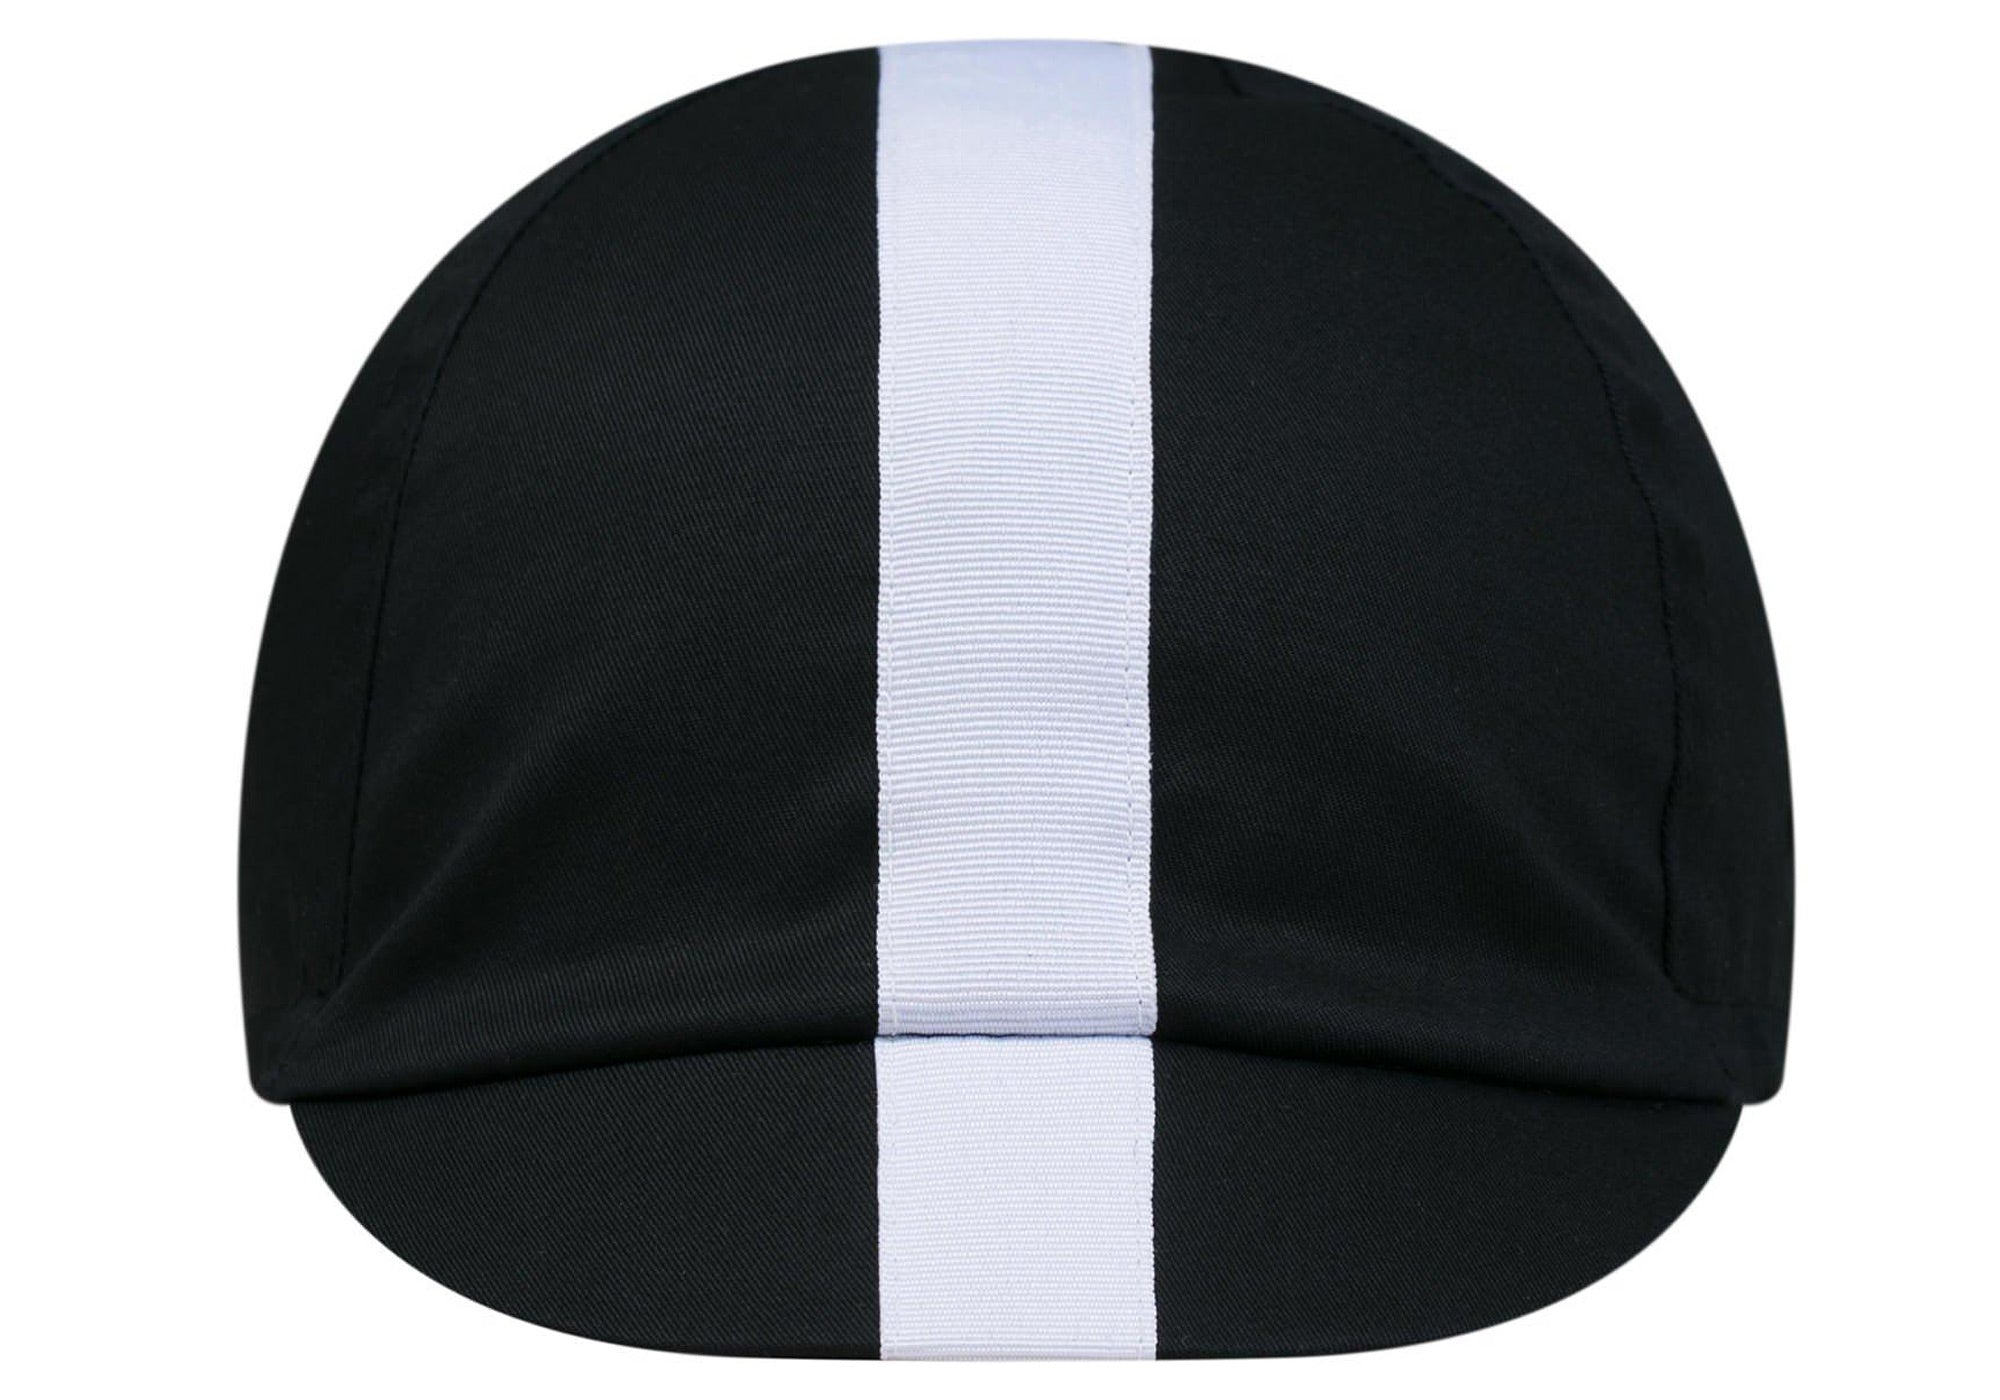 Rapha Unisex Cap II, Black/White, Medium-Large buy now at Woolys Wheels Sydney